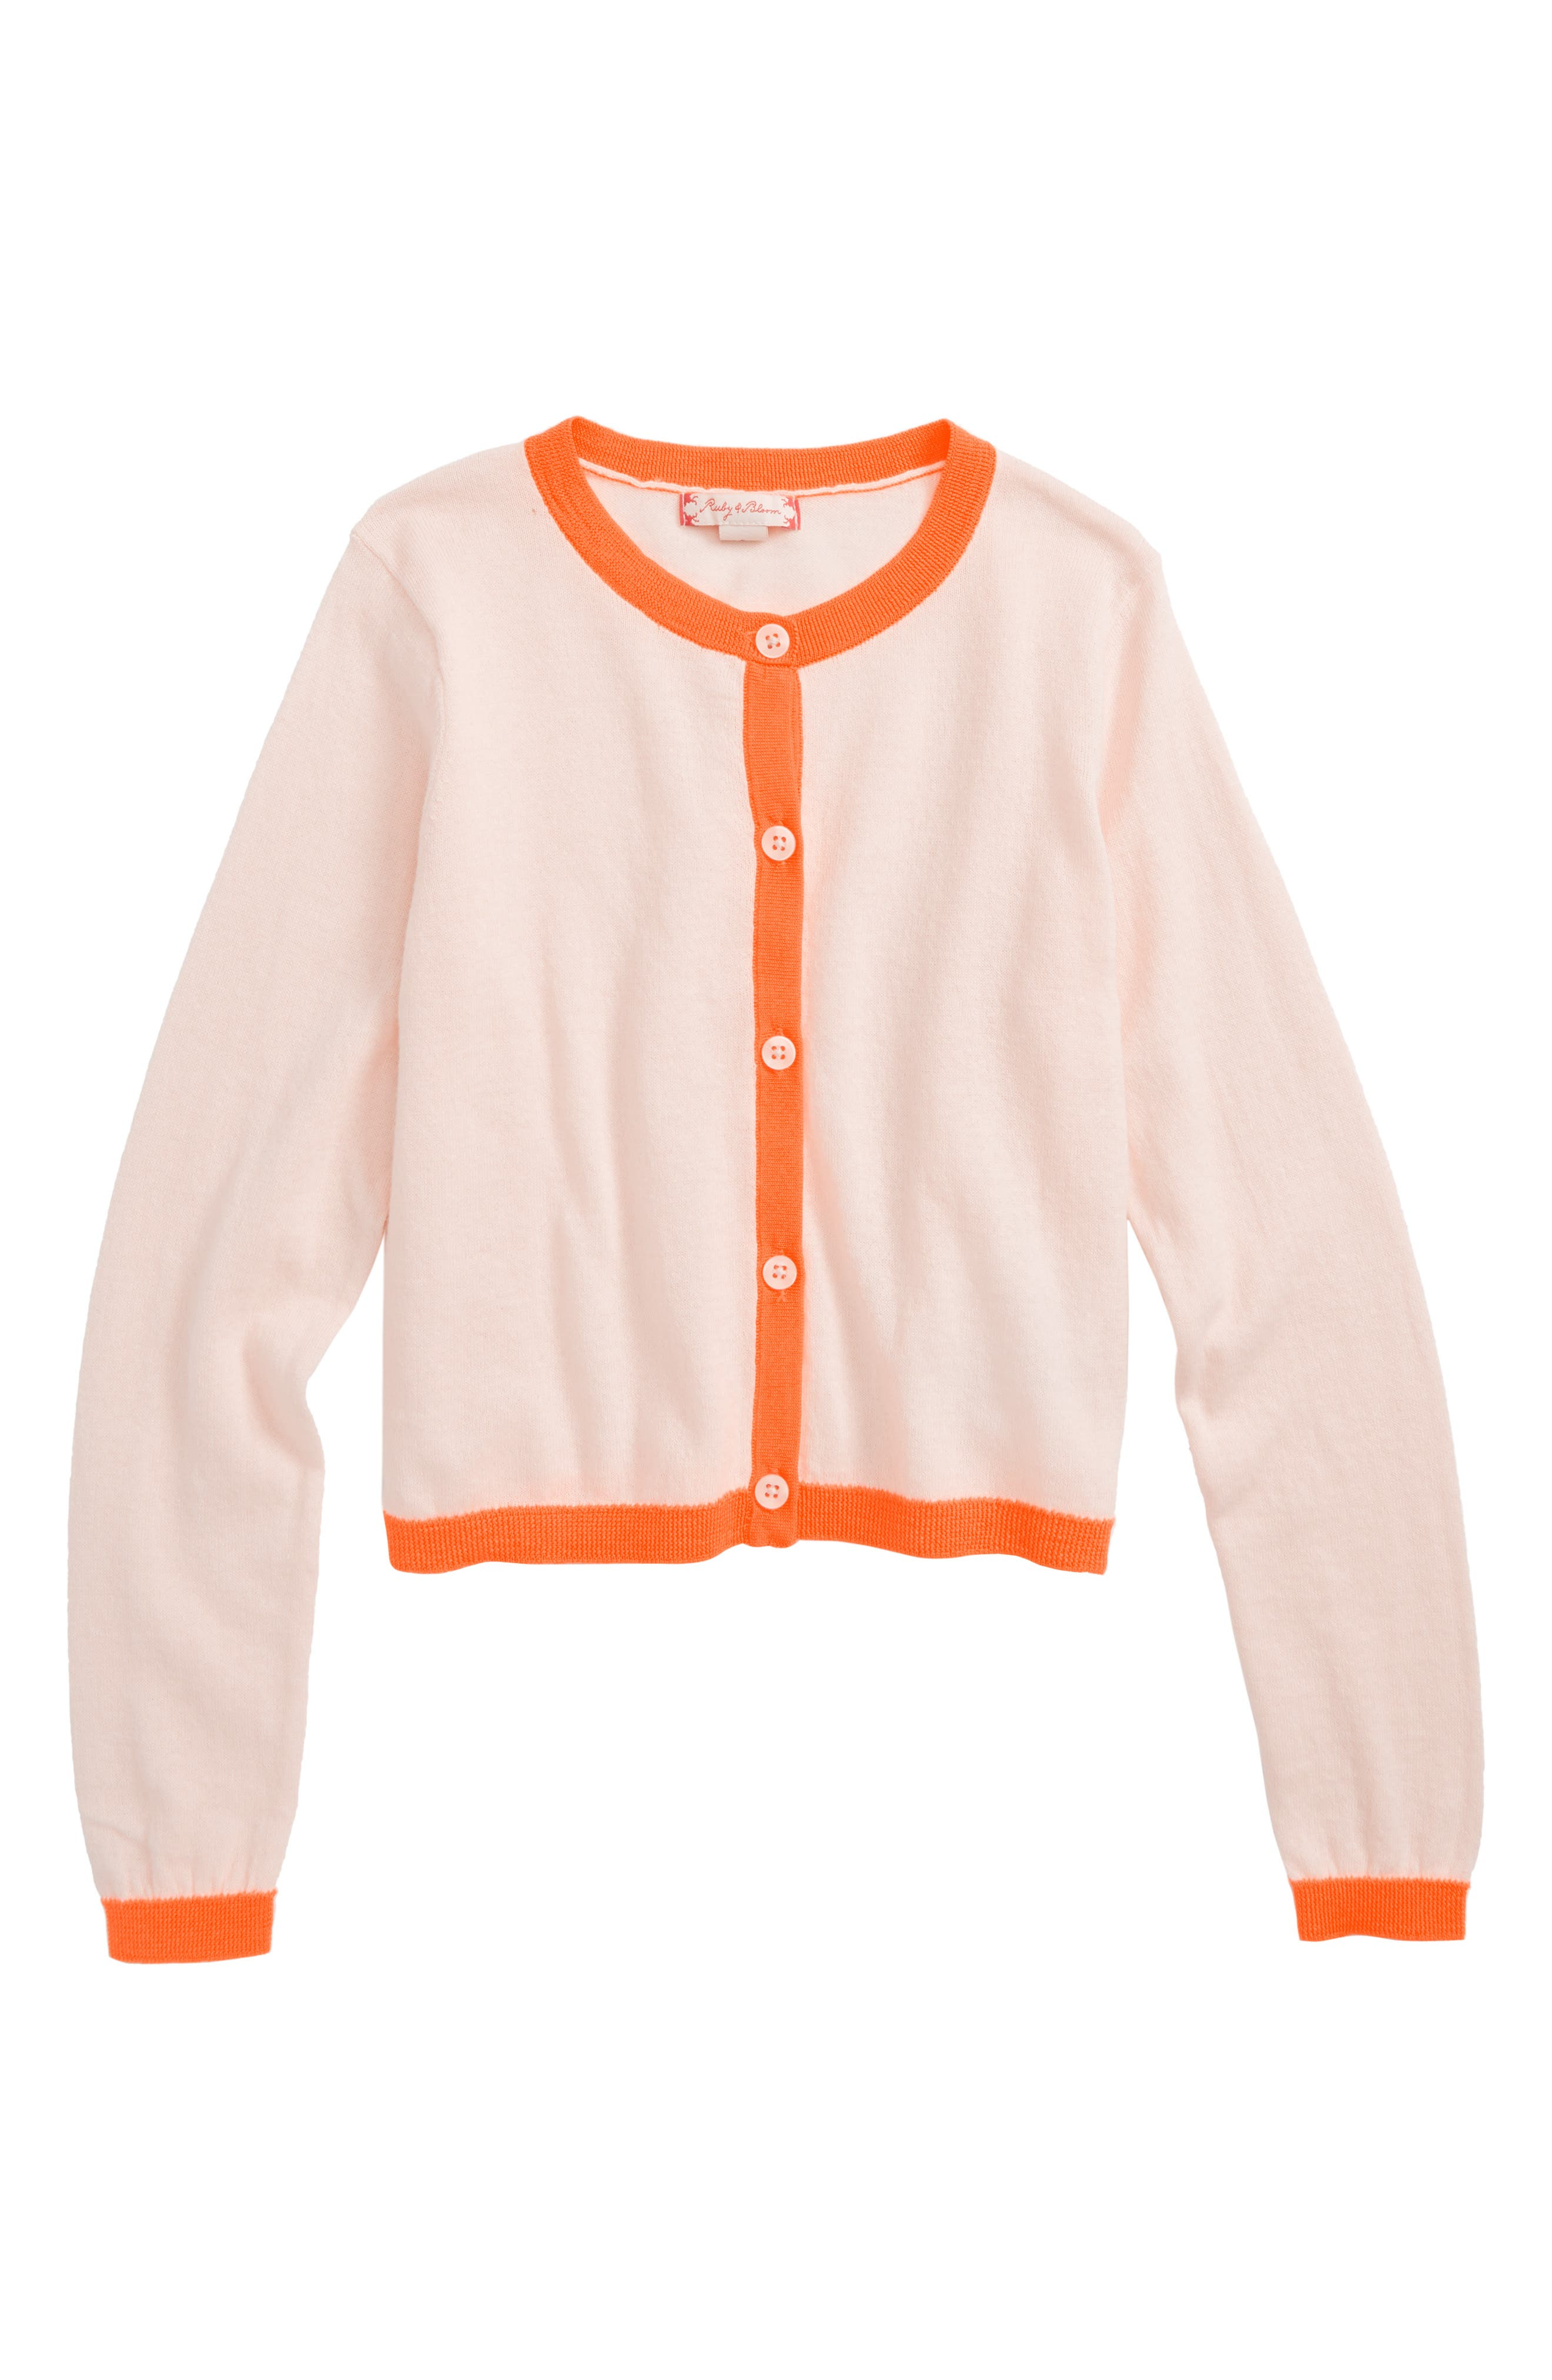 Alternate Image 1 Selected - Ruby & Bloom Contrast Trim Cardigan (Toddler Girls, Little Girls & Big Girls)